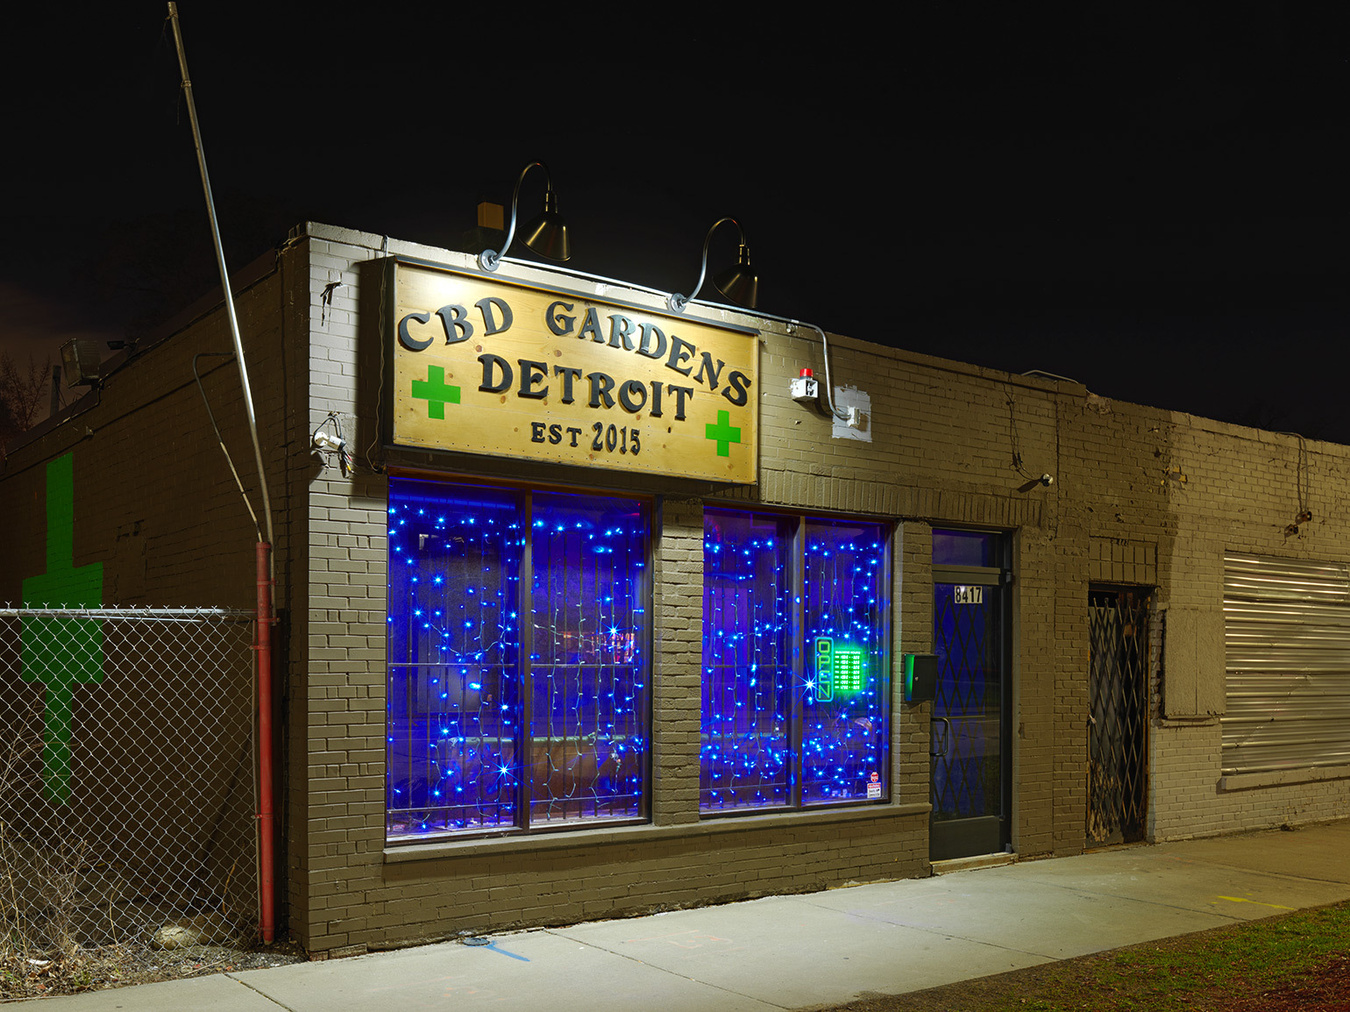 Medical Marijuana Dispensary #9, Westside, Detroit 2016